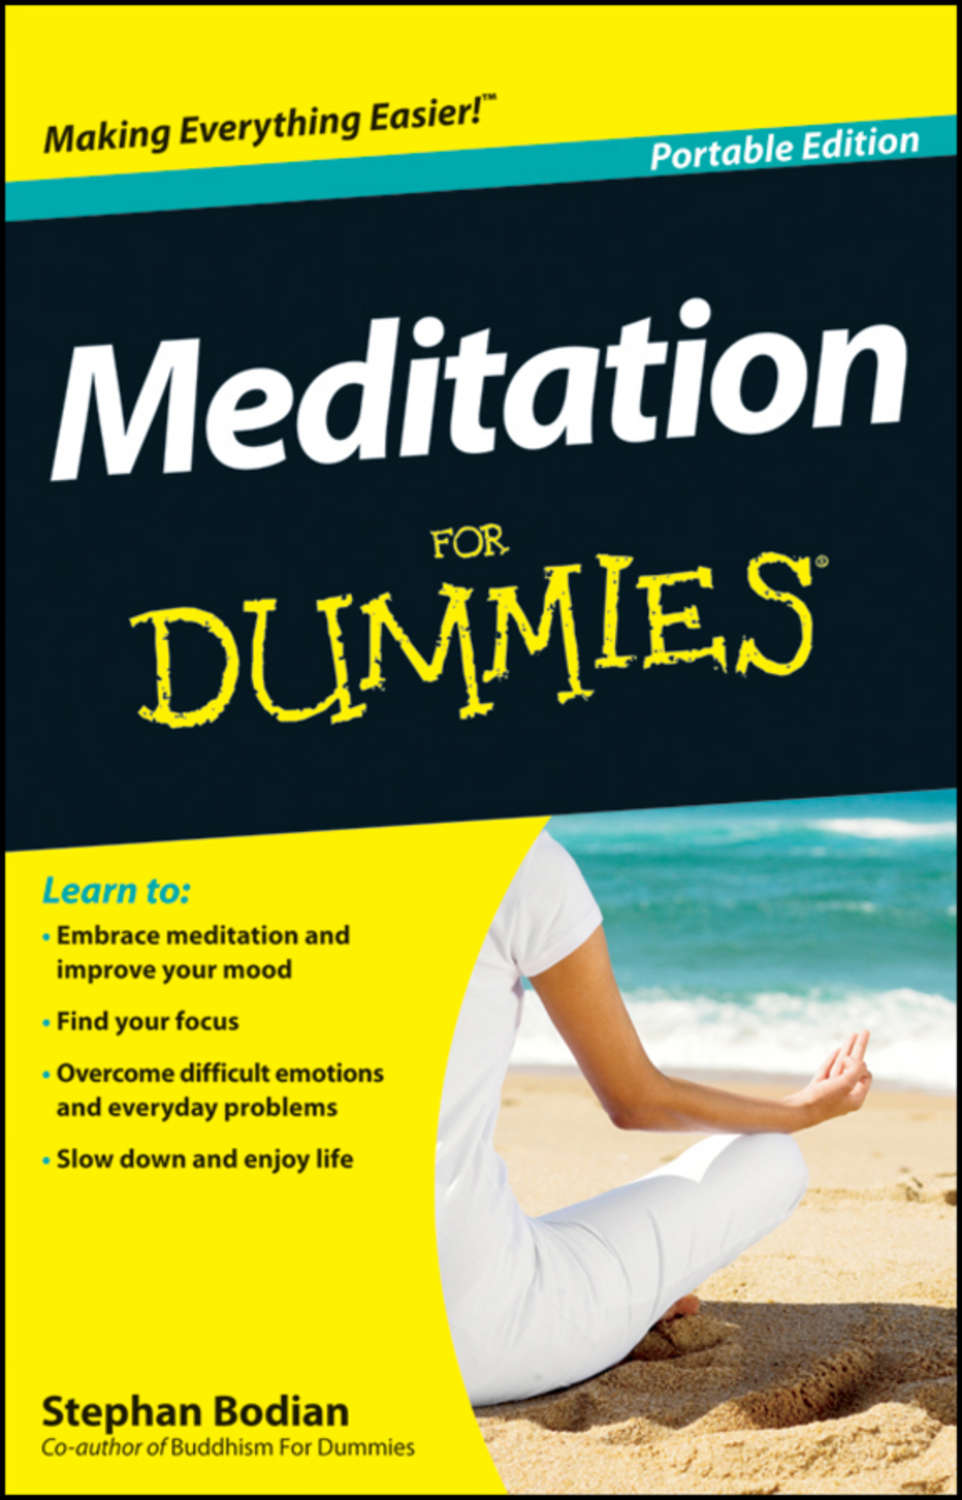 meditation for dummies Introduction aft er reading and digesting the scholarly discussion on the myriad health benefi ts attributed to meditation, it is quite tempting for the busy physician.